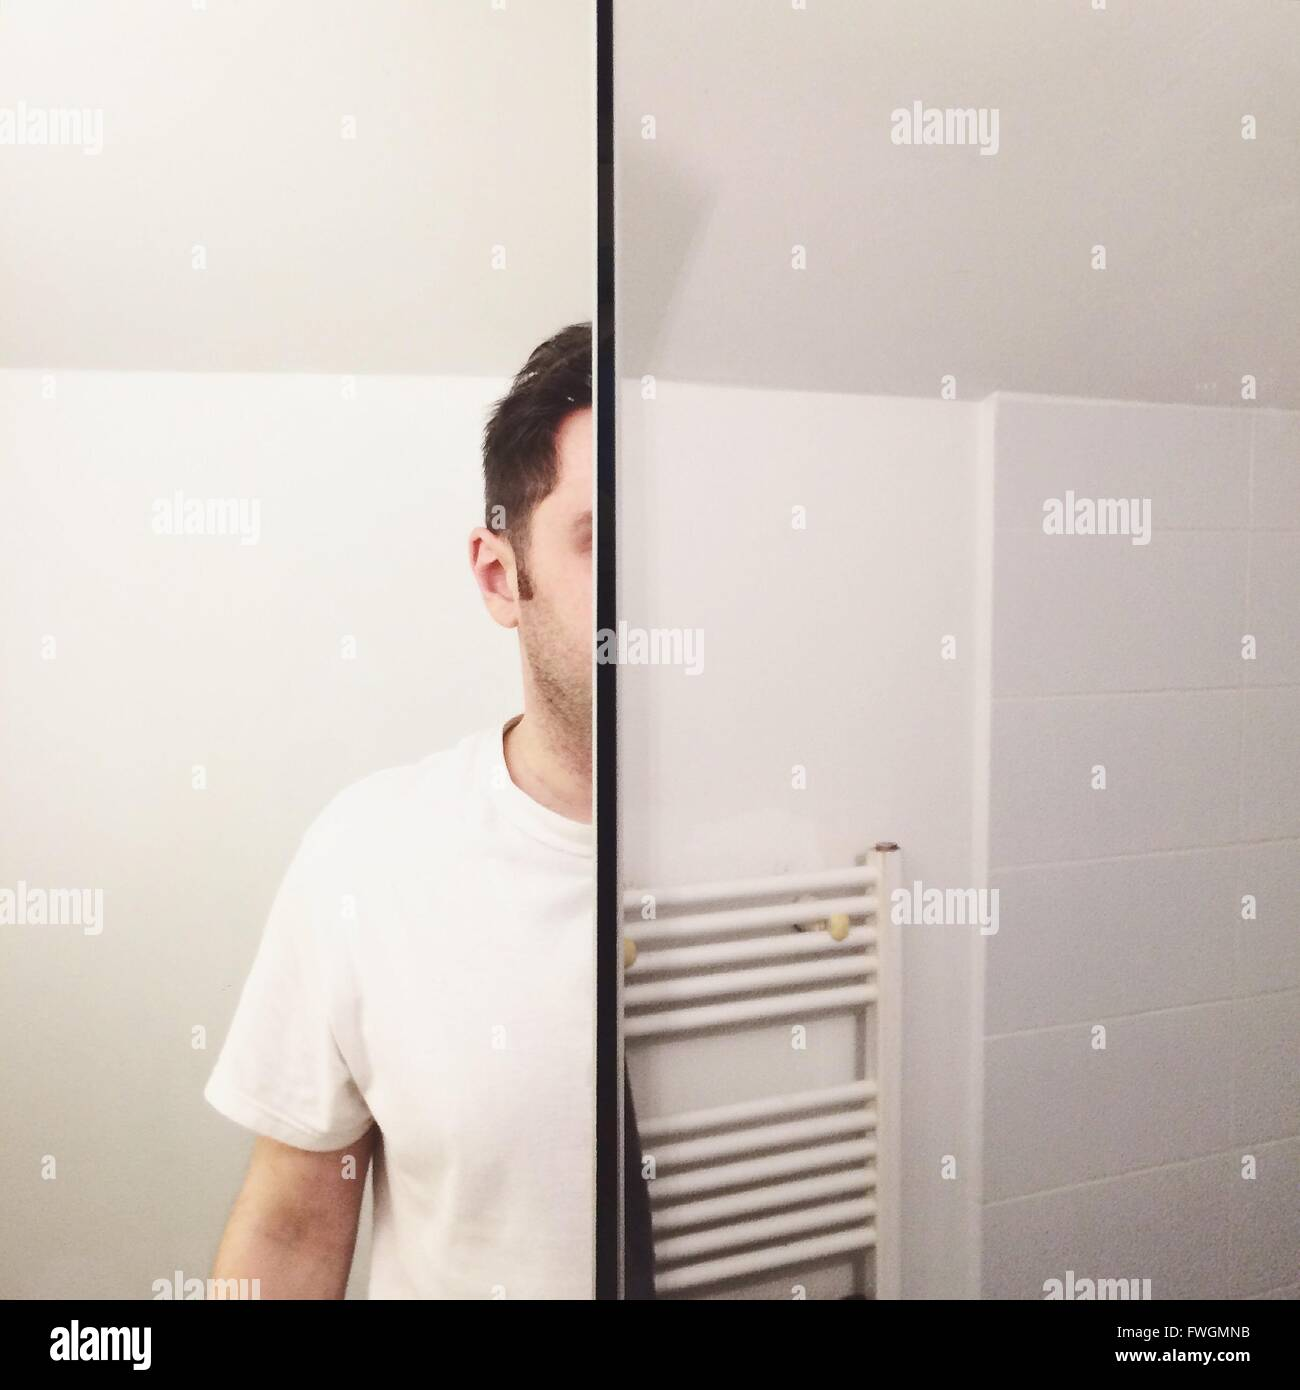 Cropped Image Of Man Reflecting On Mirror Against Wall At Bathroom - Stock Image